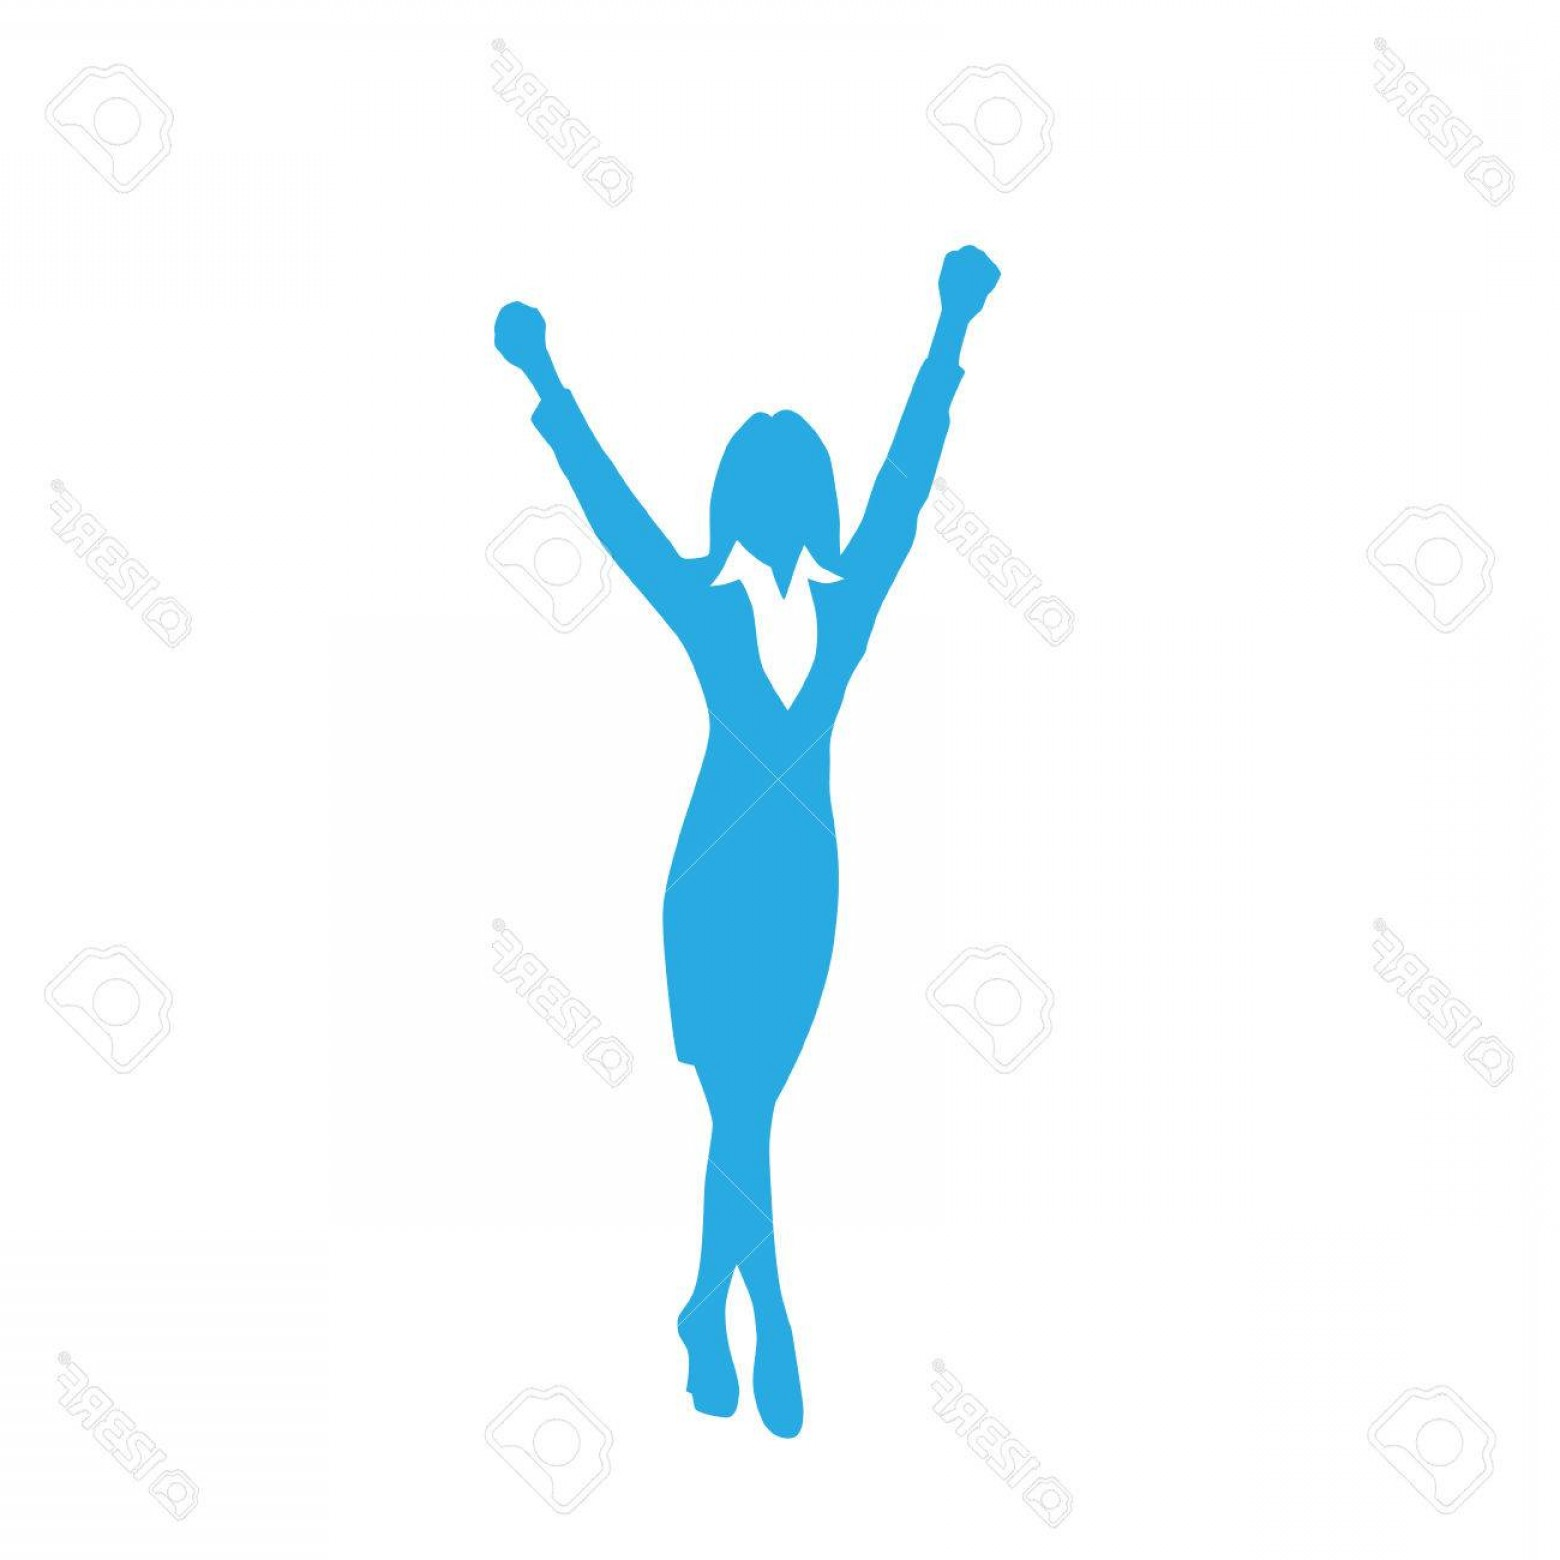 Holding Hands Up Silhouette Vector: Photostock Vector Business Woman Silhouette Excited Hold Hands Up